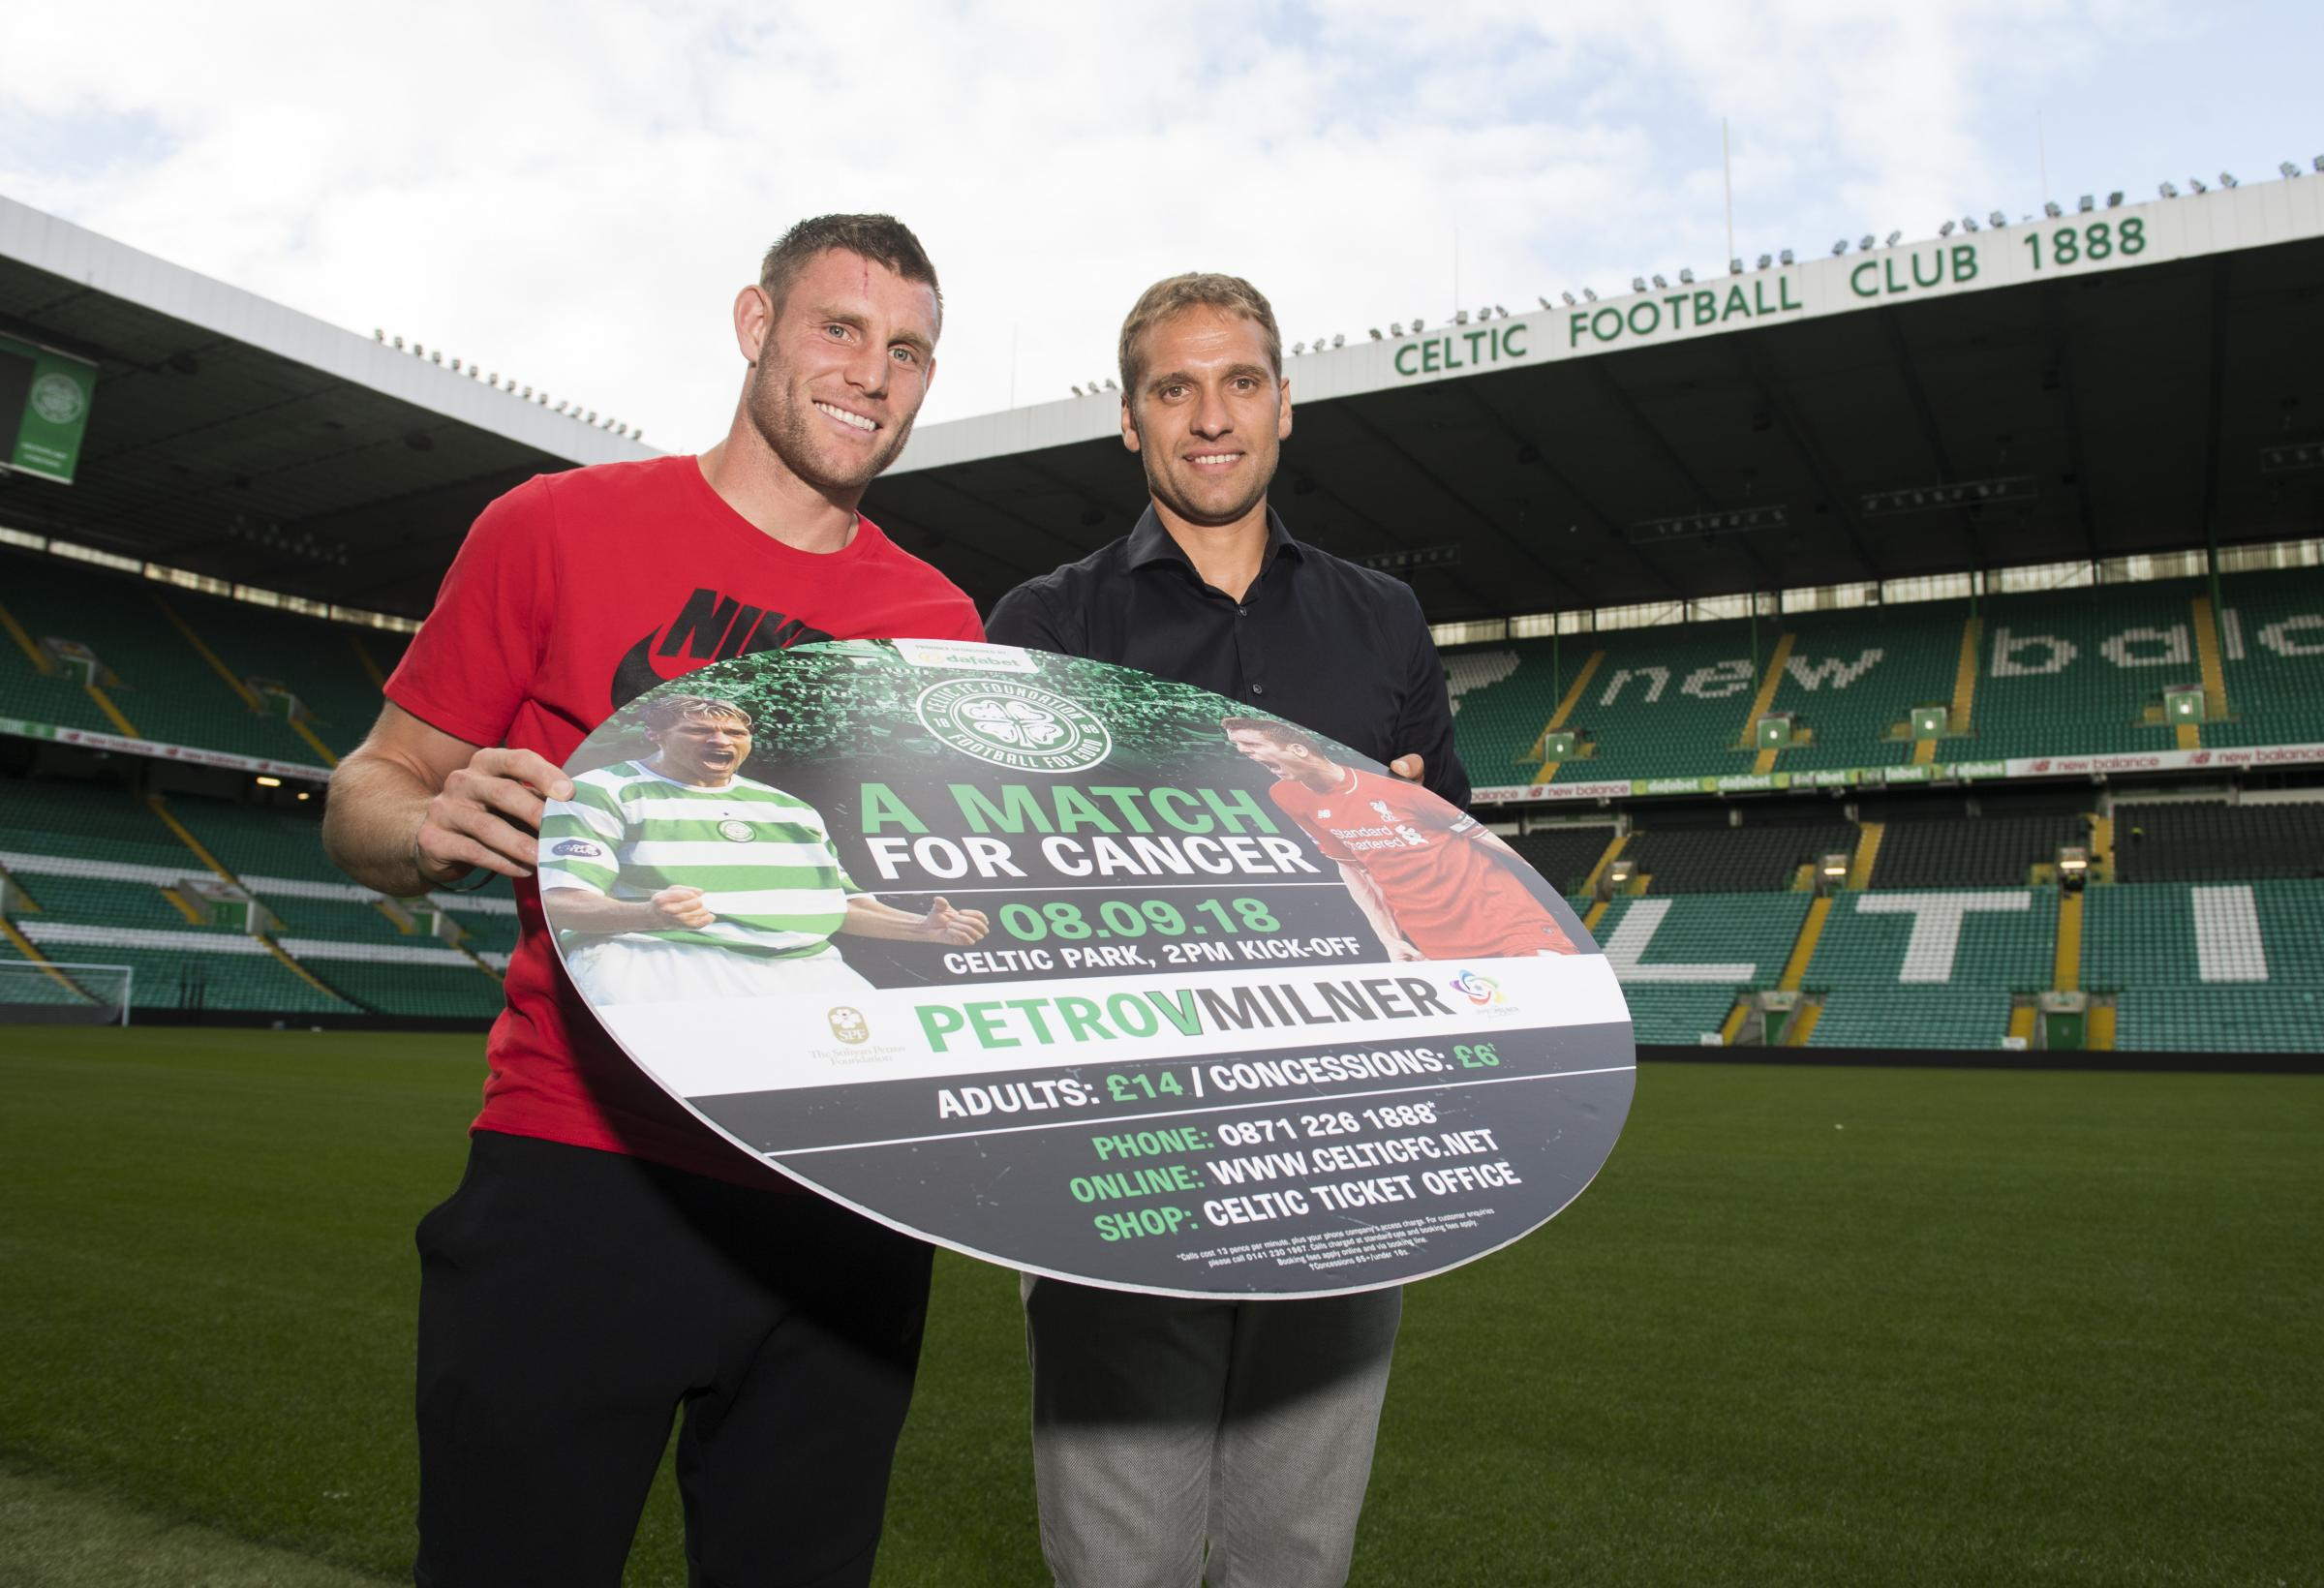 Liverpool player James Milner and former Celtic midfielder Stiliyan Petrov promote 'A Match for Cancer' at Parkhead.